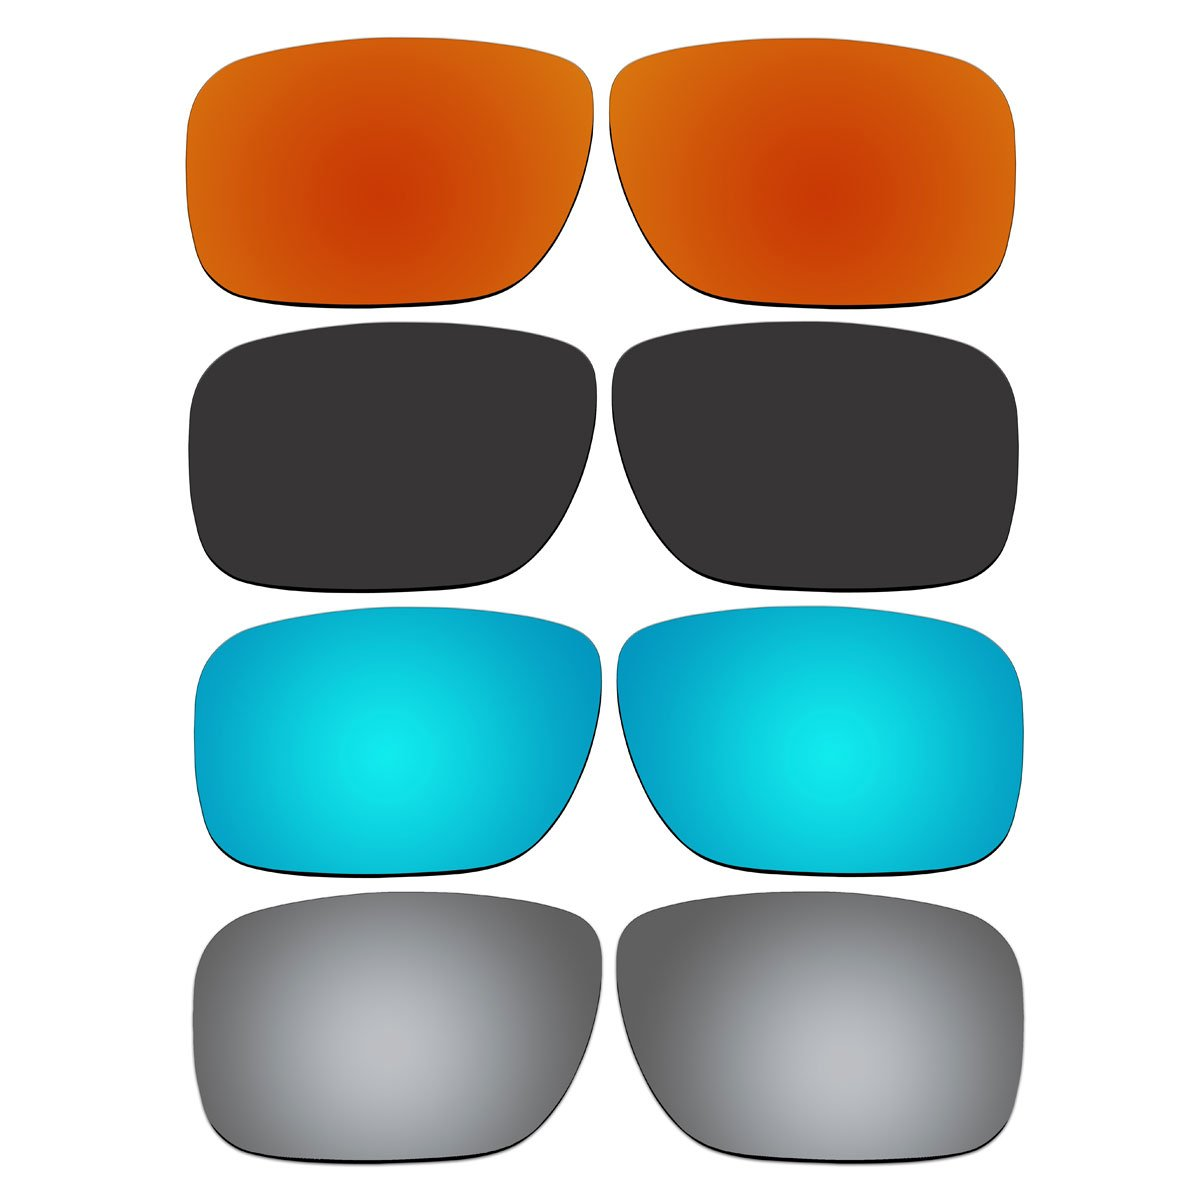 4 Pair Replacement Lenses for Oakley Holbrook Sunglasses With Polarized Pack P4-1